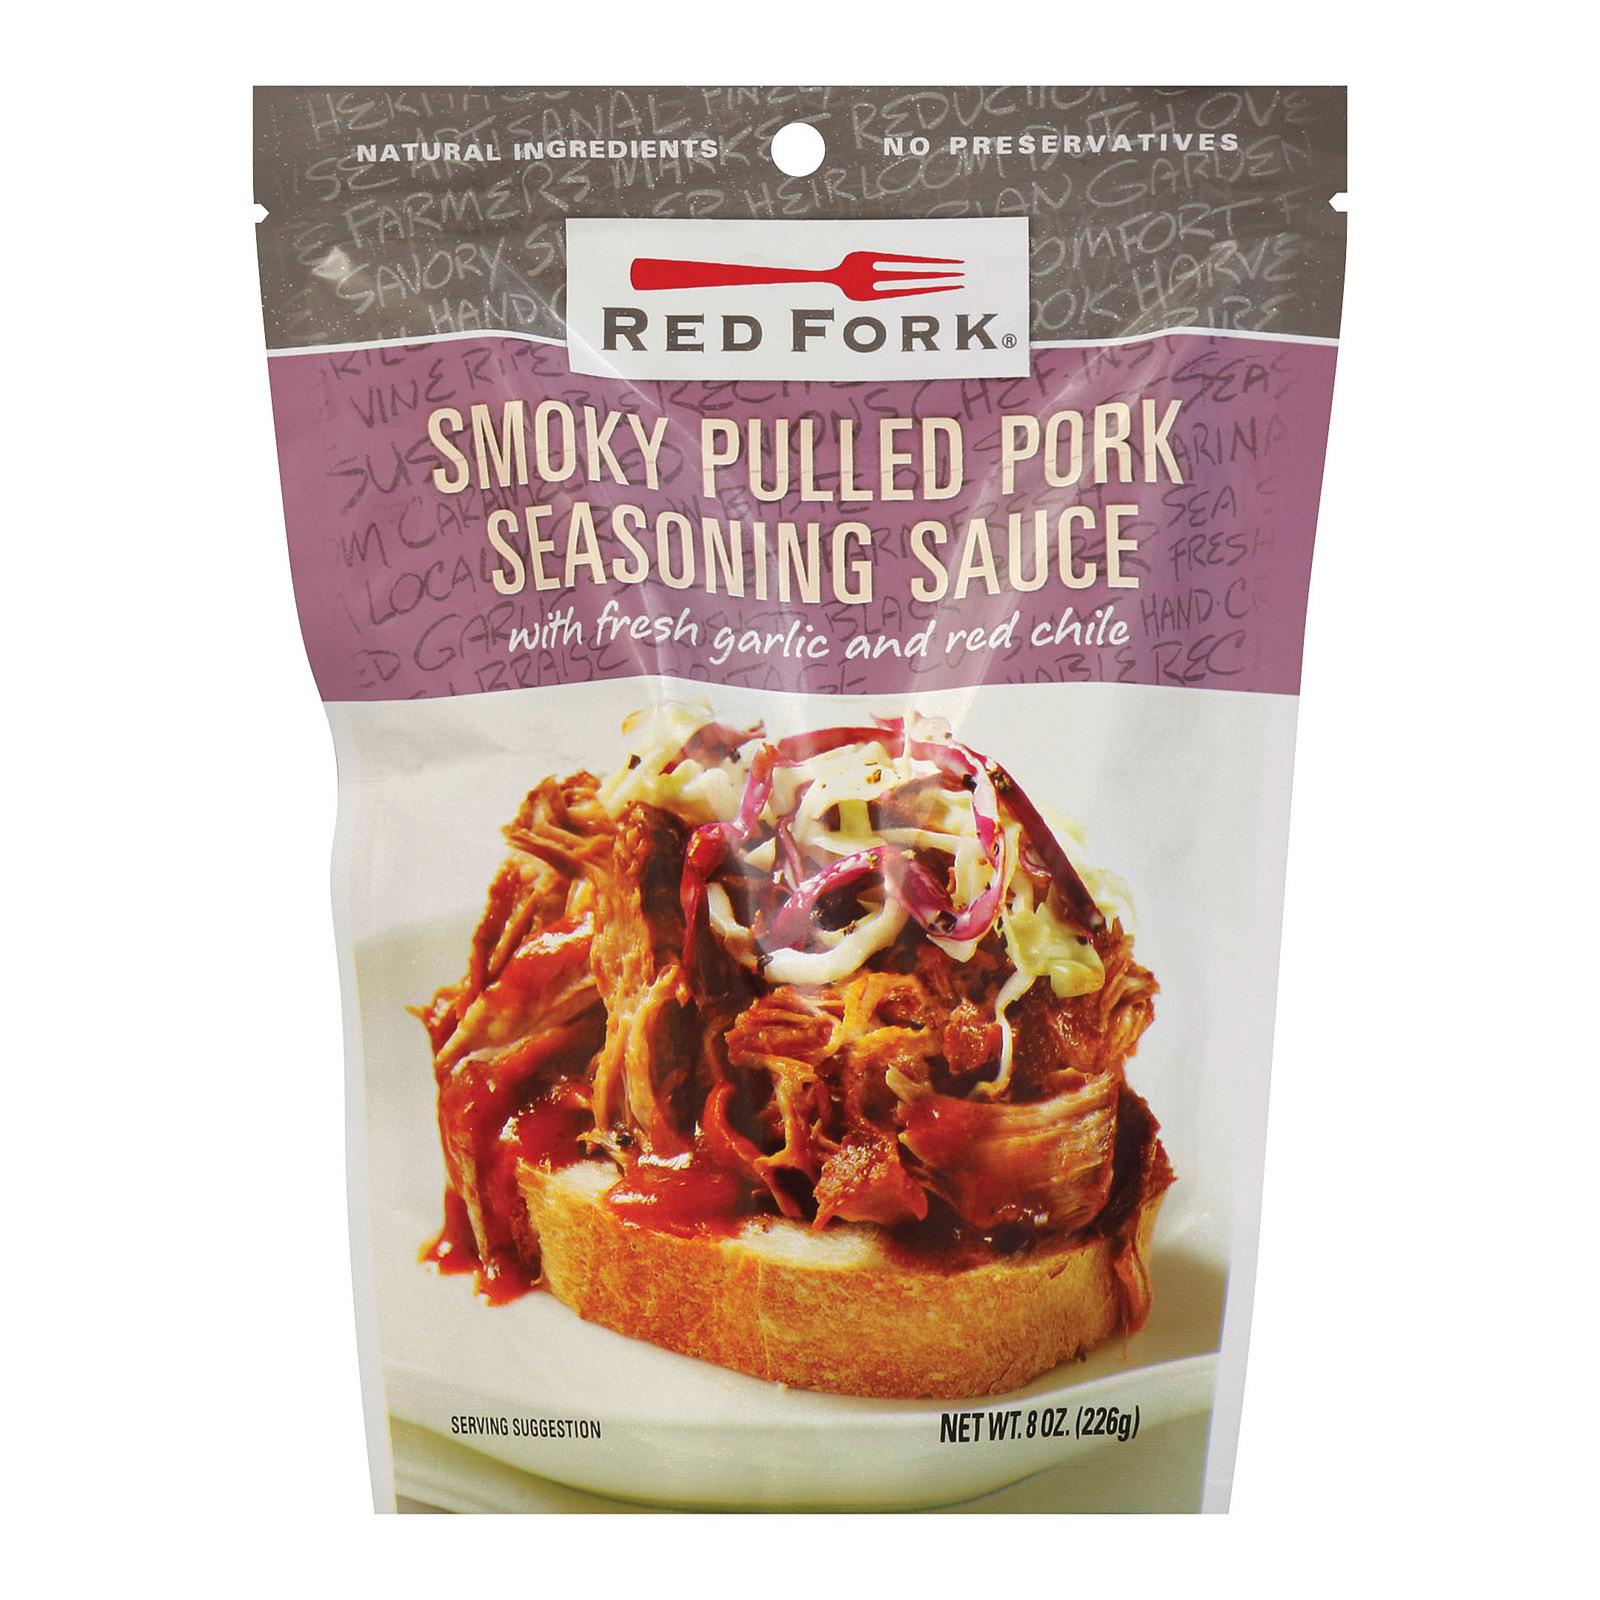 Red Fork Seasoning Sauce - Smoky Pulled Pork - Case of 6 - 8 oz.